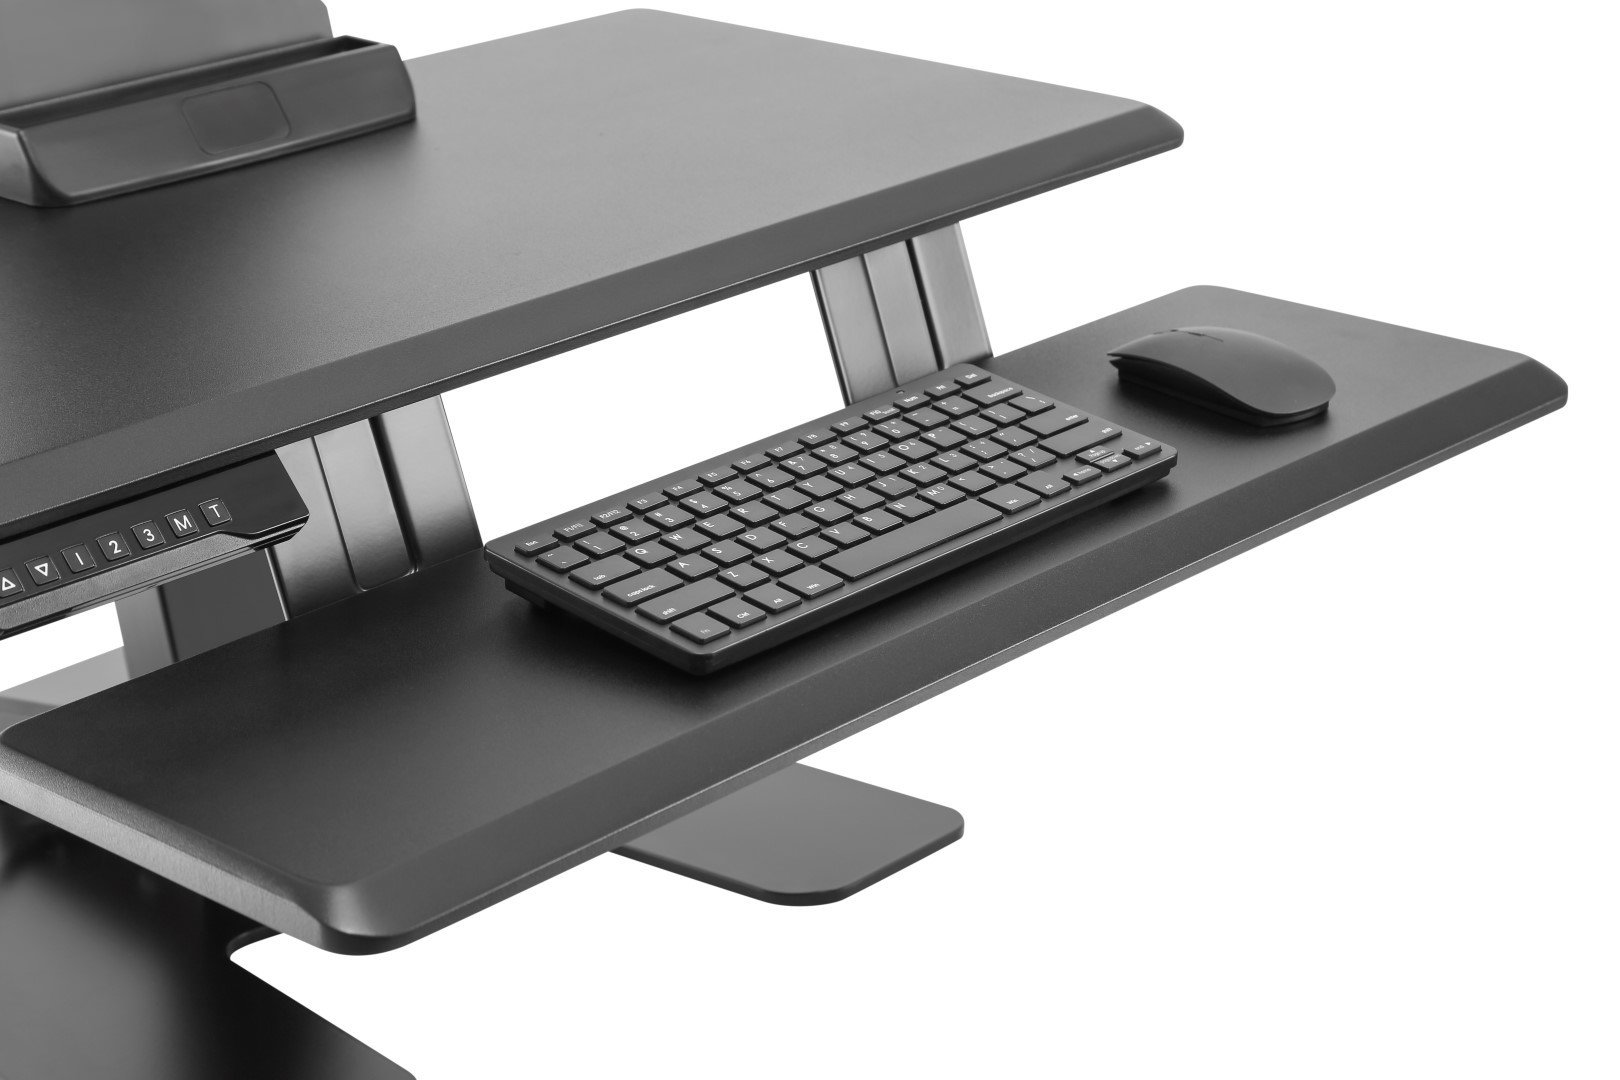 E-Lift D keyboard tray with keyboard and mouse